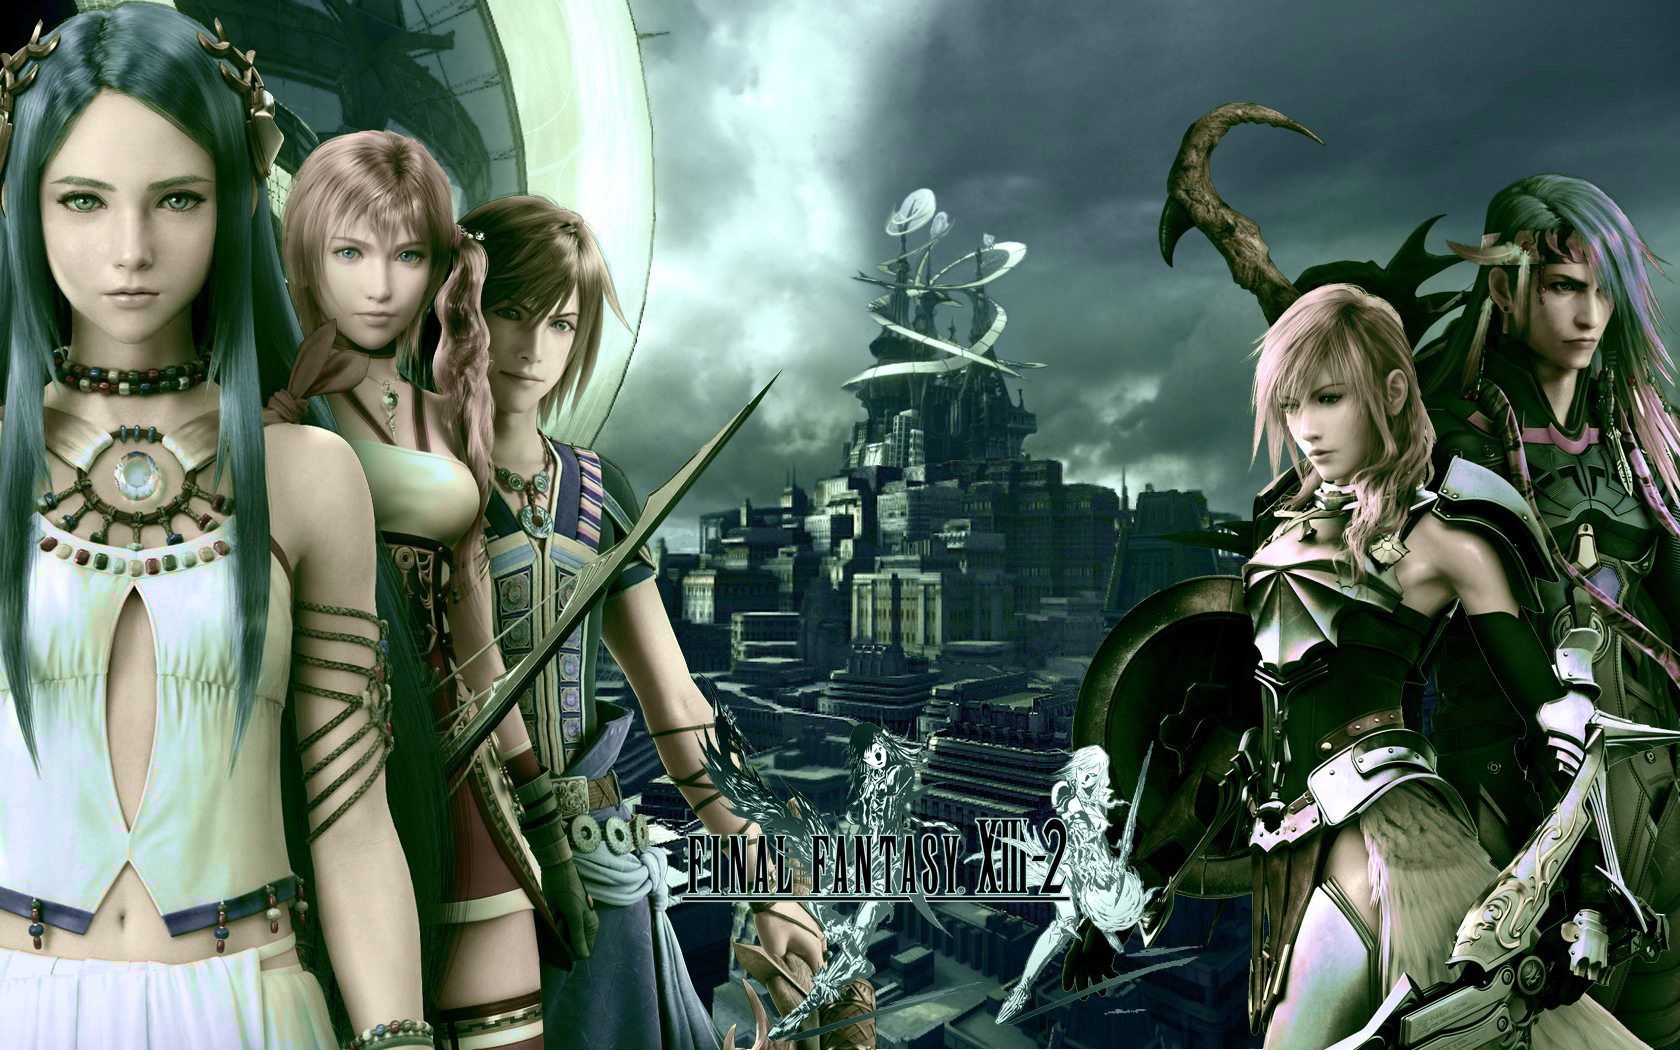 final fantasy xiii, wallpaper - zerochan anime image board